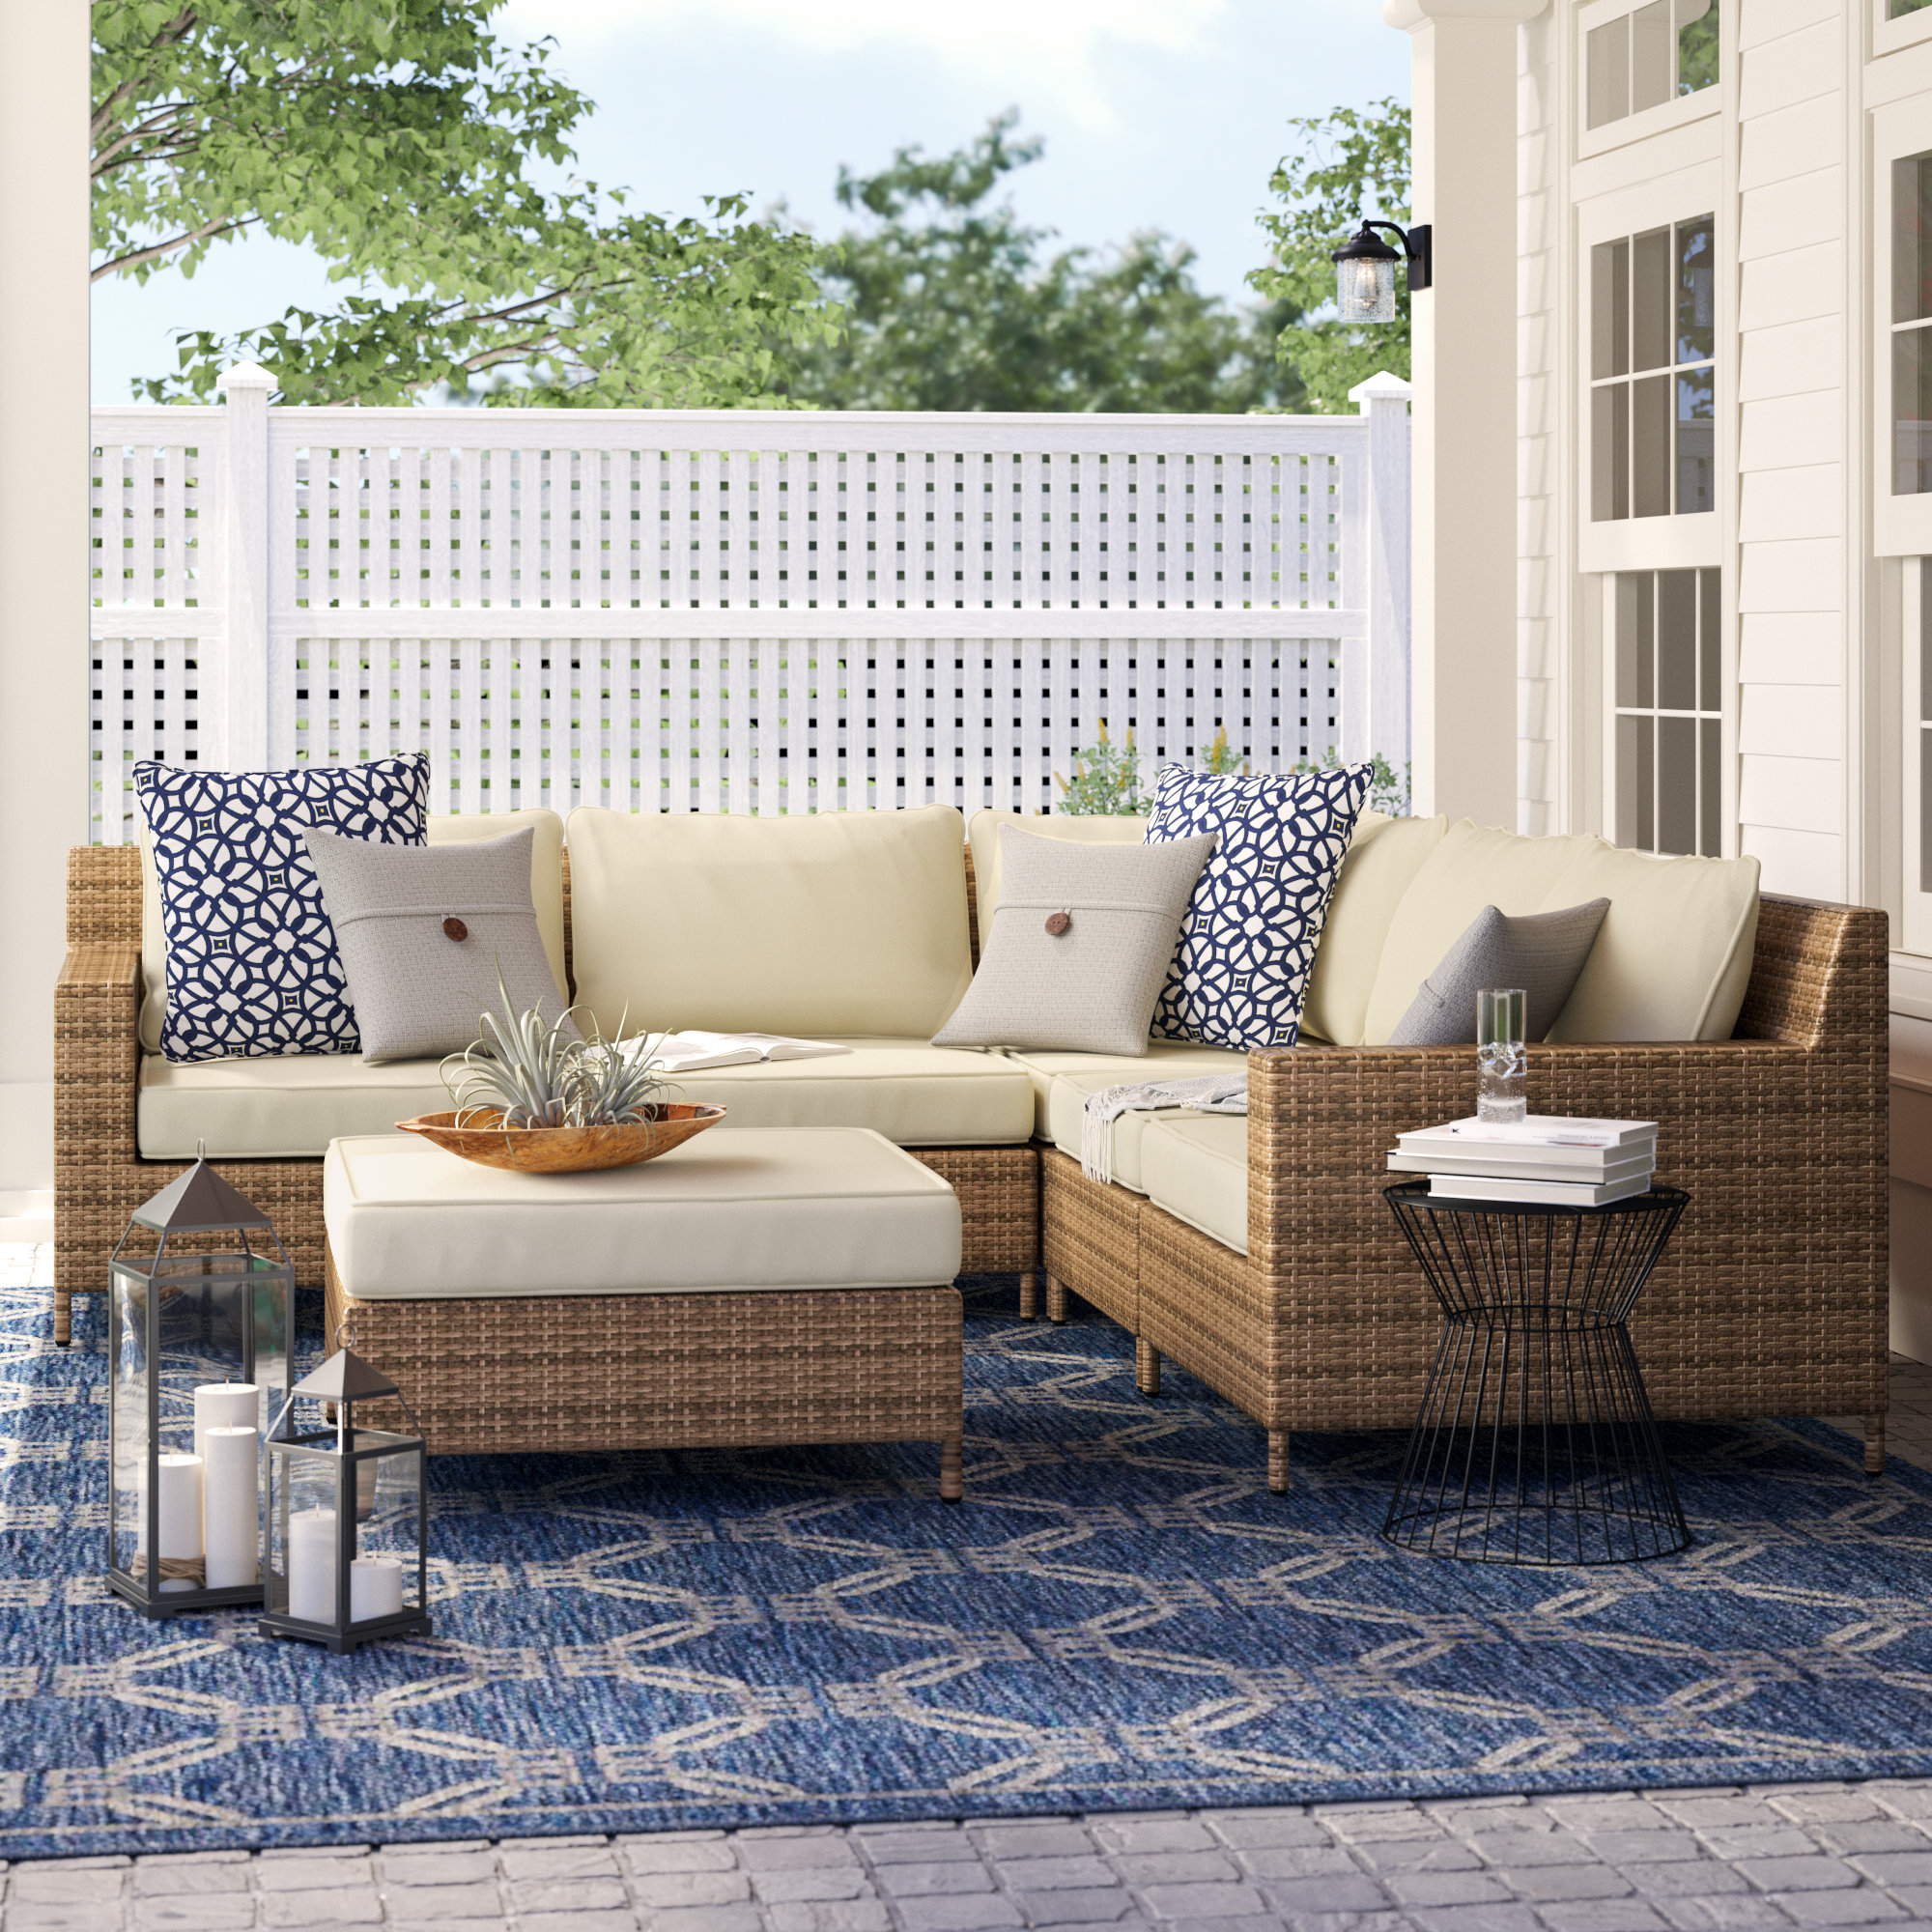 Hillcrest Patio Sectional With Cushions Pertaining To Popular Larsen Patio Sectionals With Cushions (View 8 of 20)